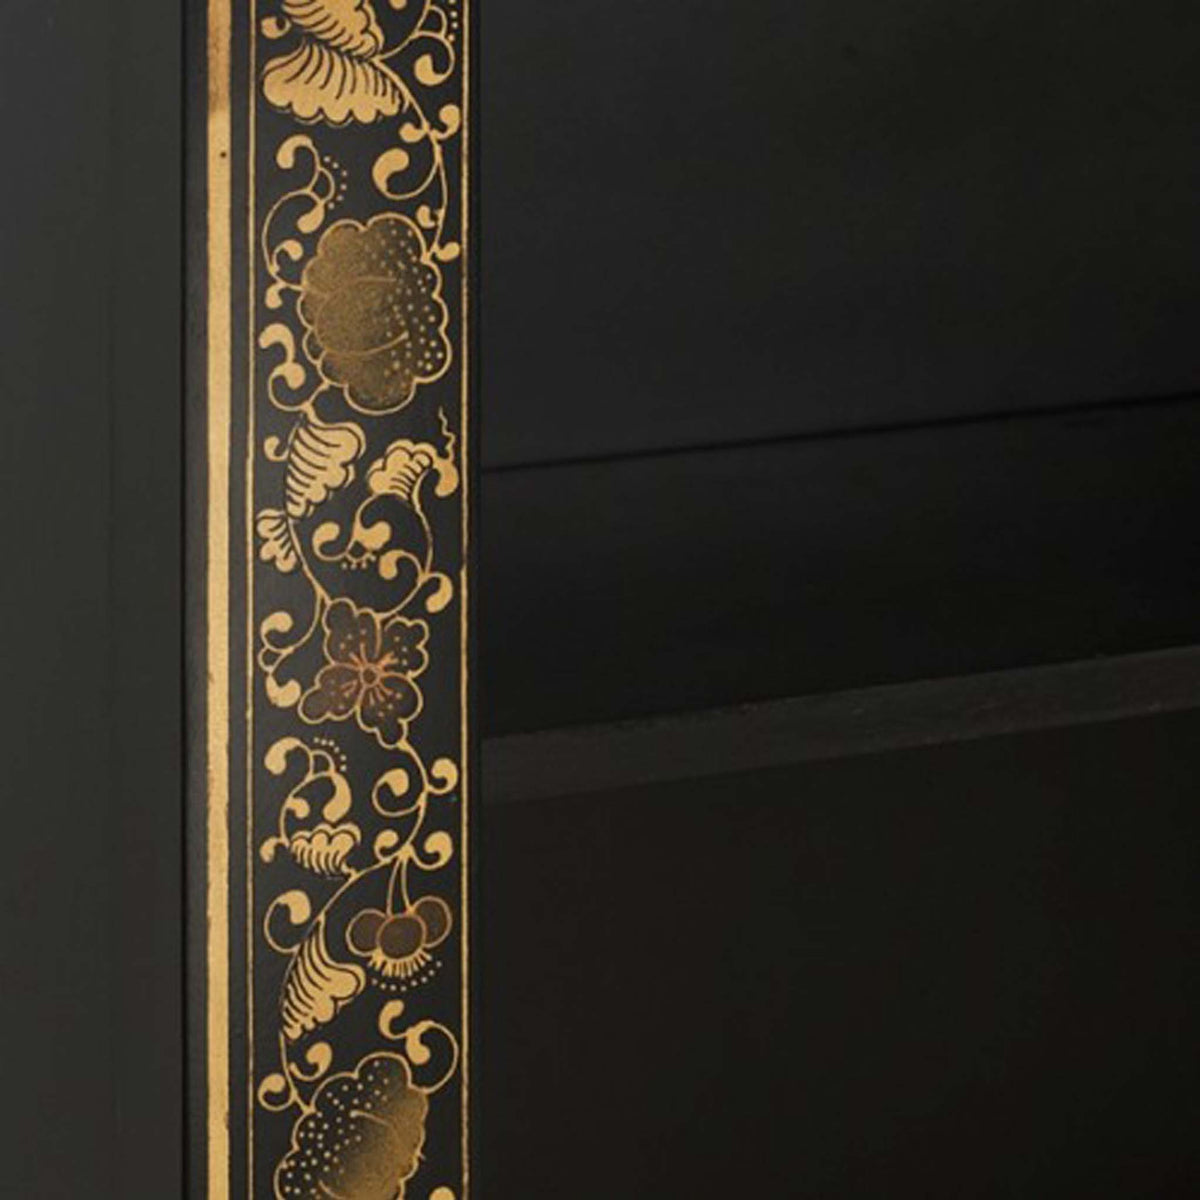 The Nine Schools Oriental Decorated Black Bookcase - close up of Chinese pattern